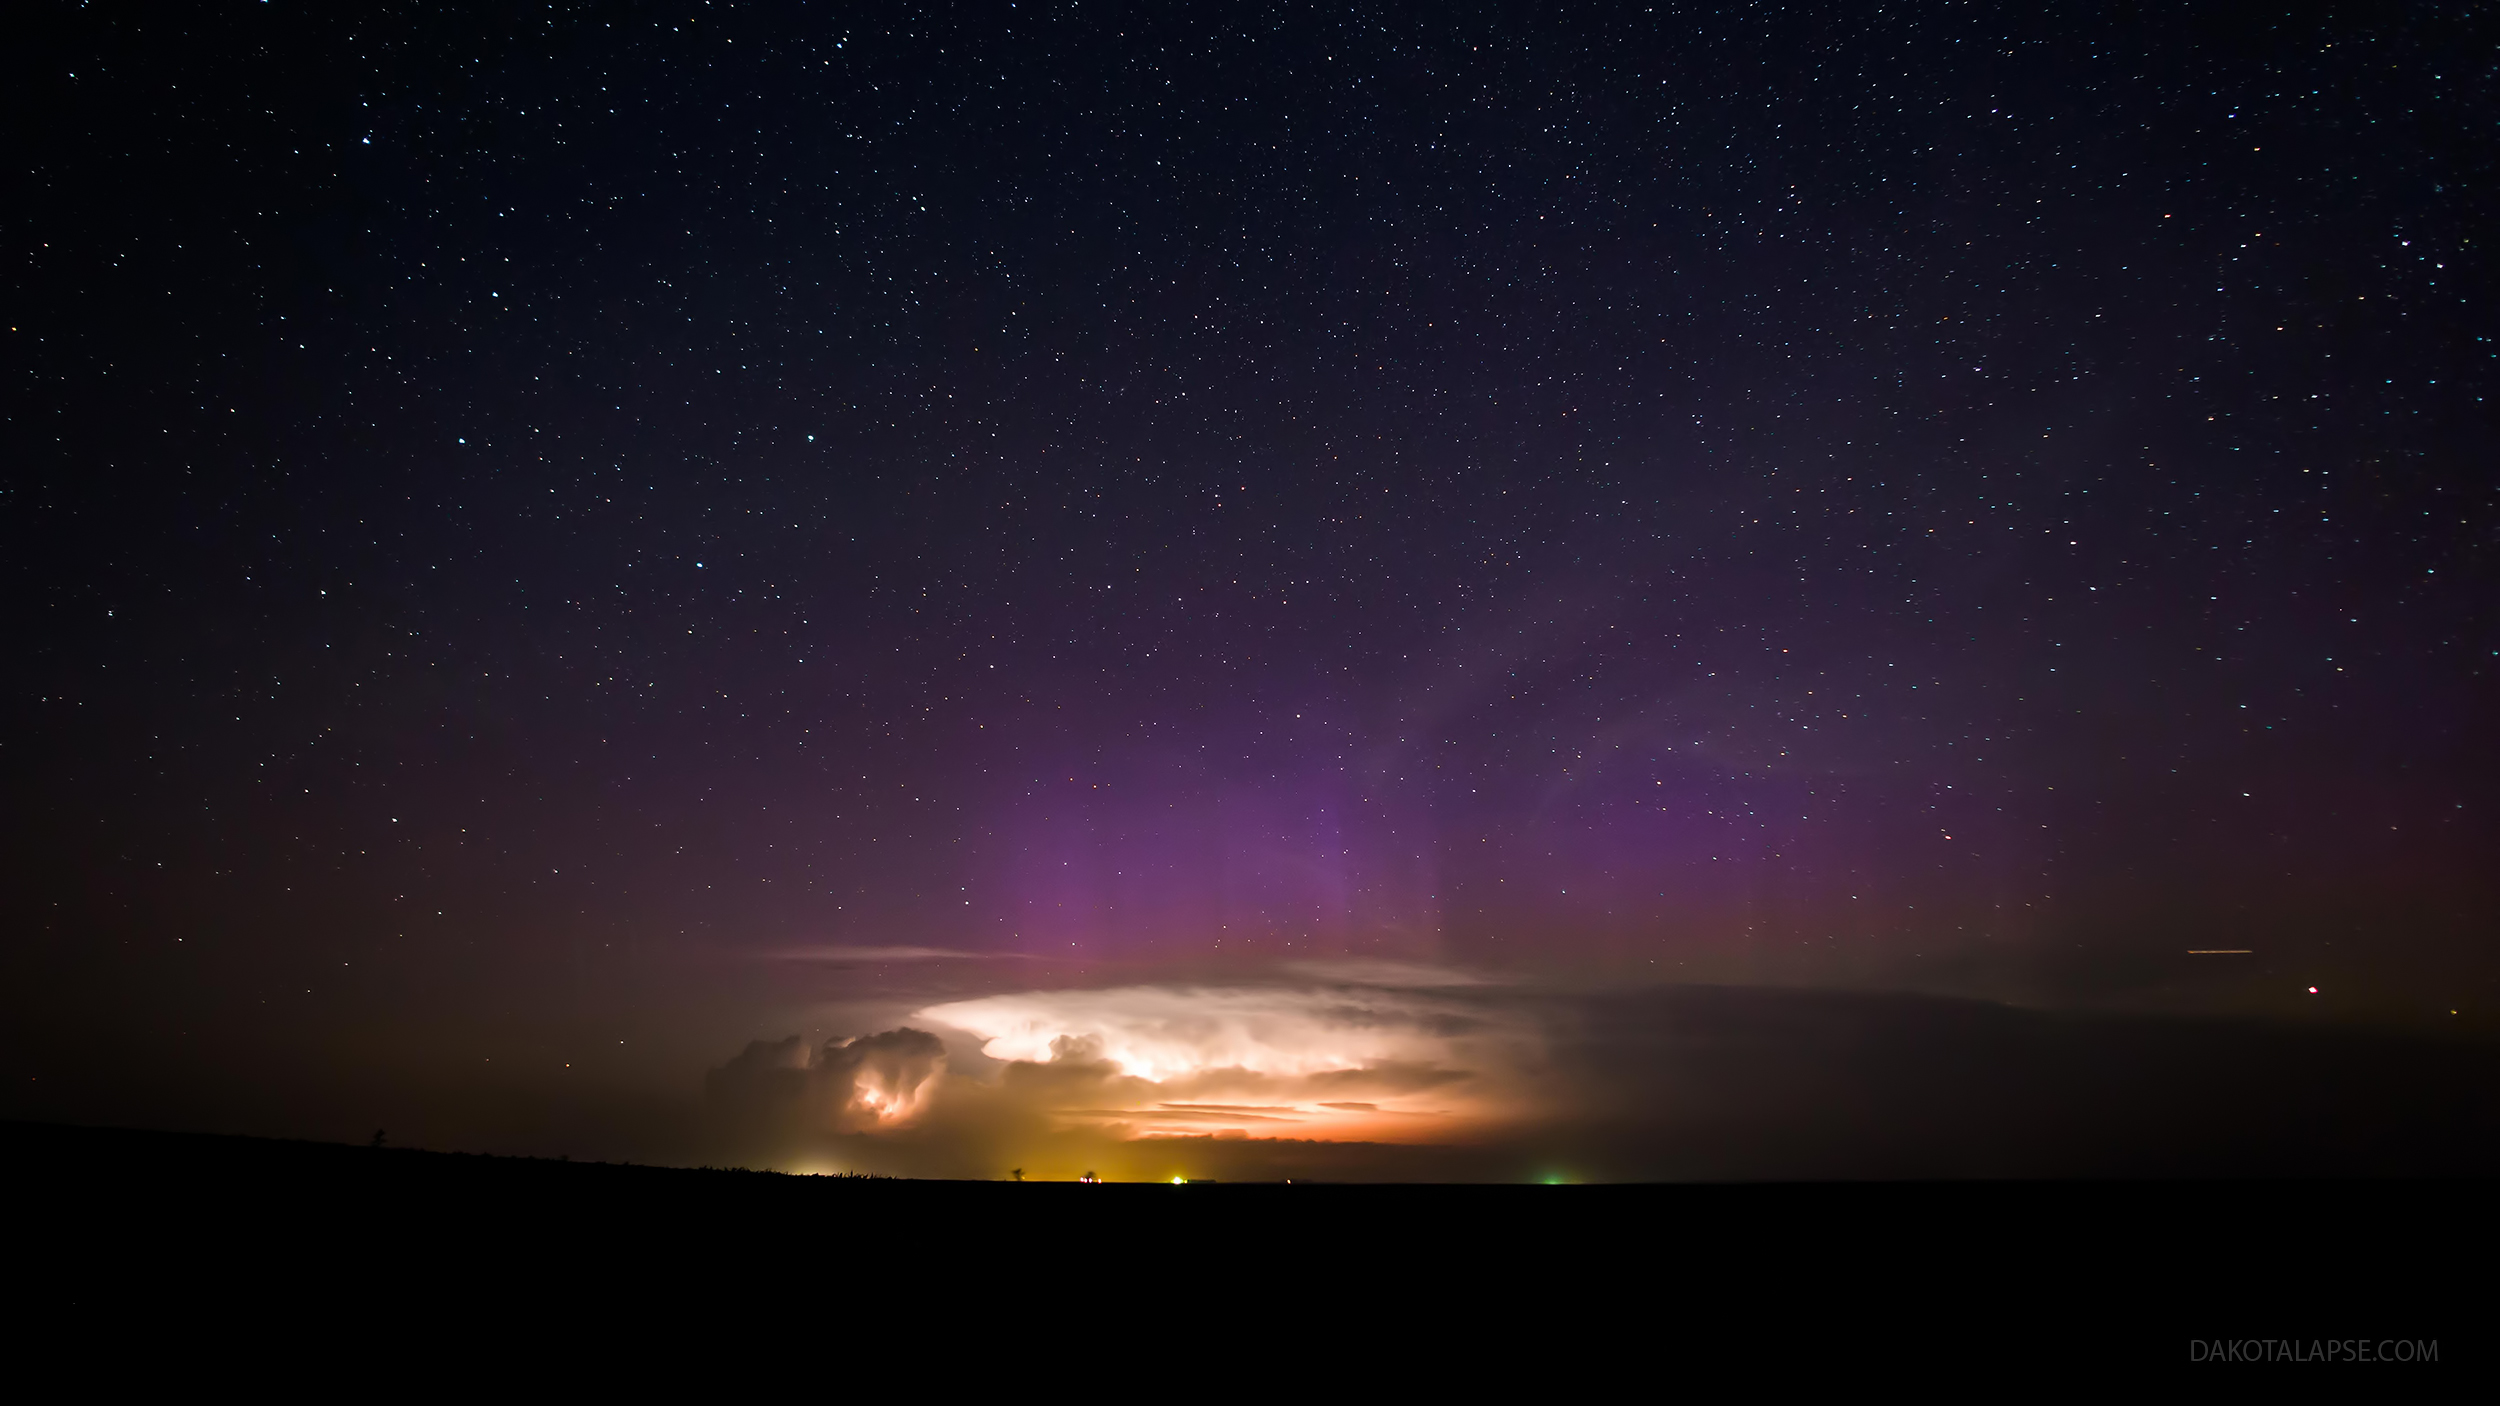 Whoa! Milky Way, Auroras & Thunderstorms Stun In New Time-Lapse Video